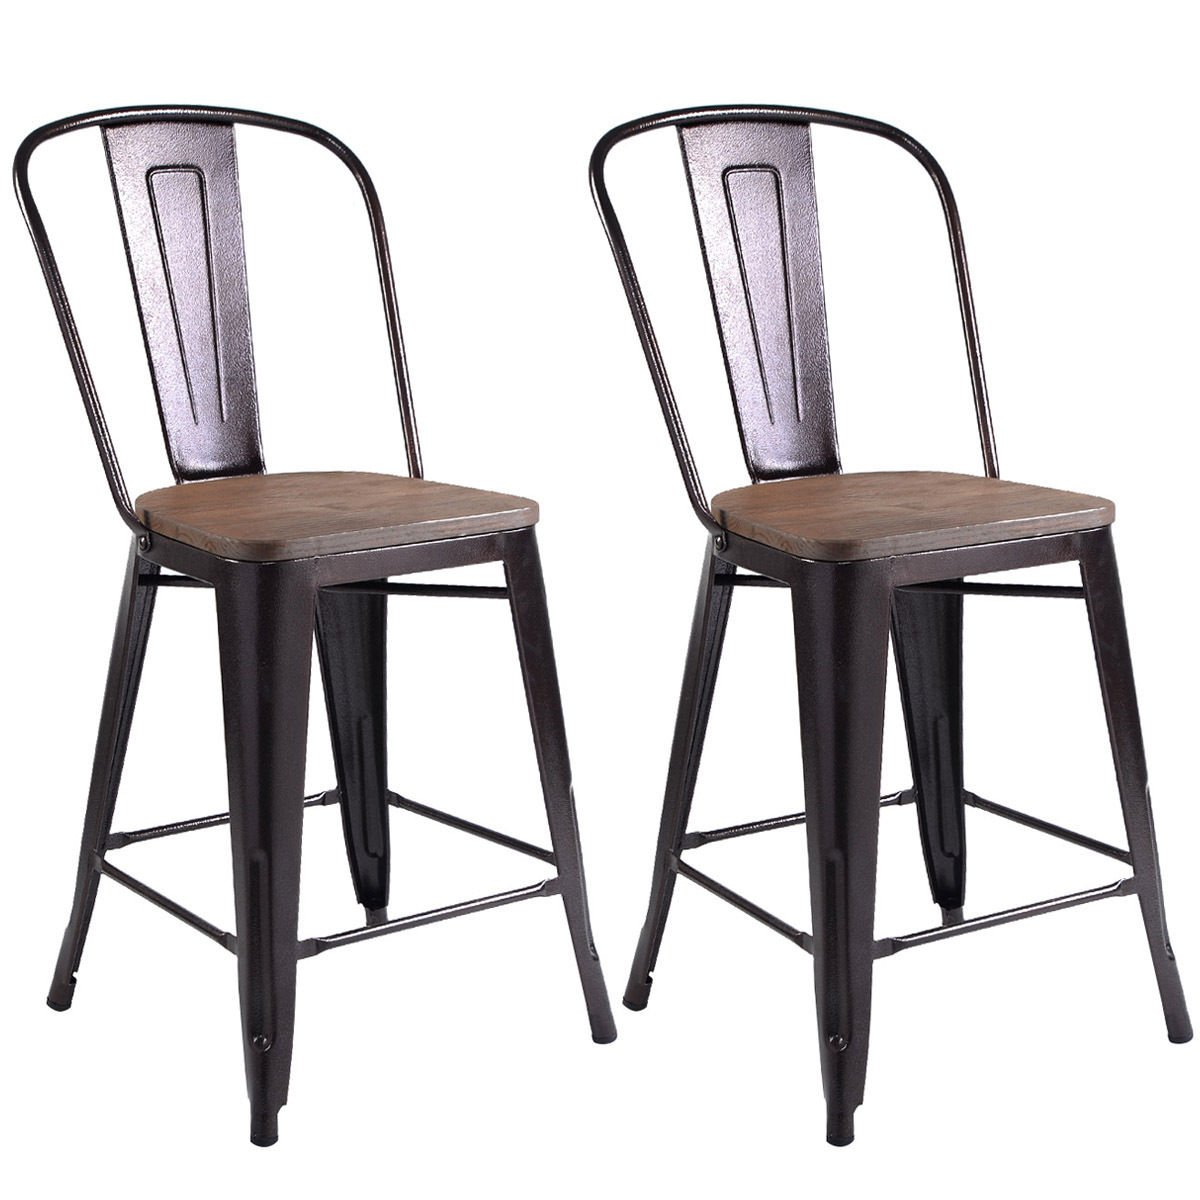 COSTWAY Copper Set of 2 Tolix Style Metal Dining Chairs with Wood Seat Stackable Industrial Counter Stool Cafe Side Chairs (Height 24'') by COSTWAY